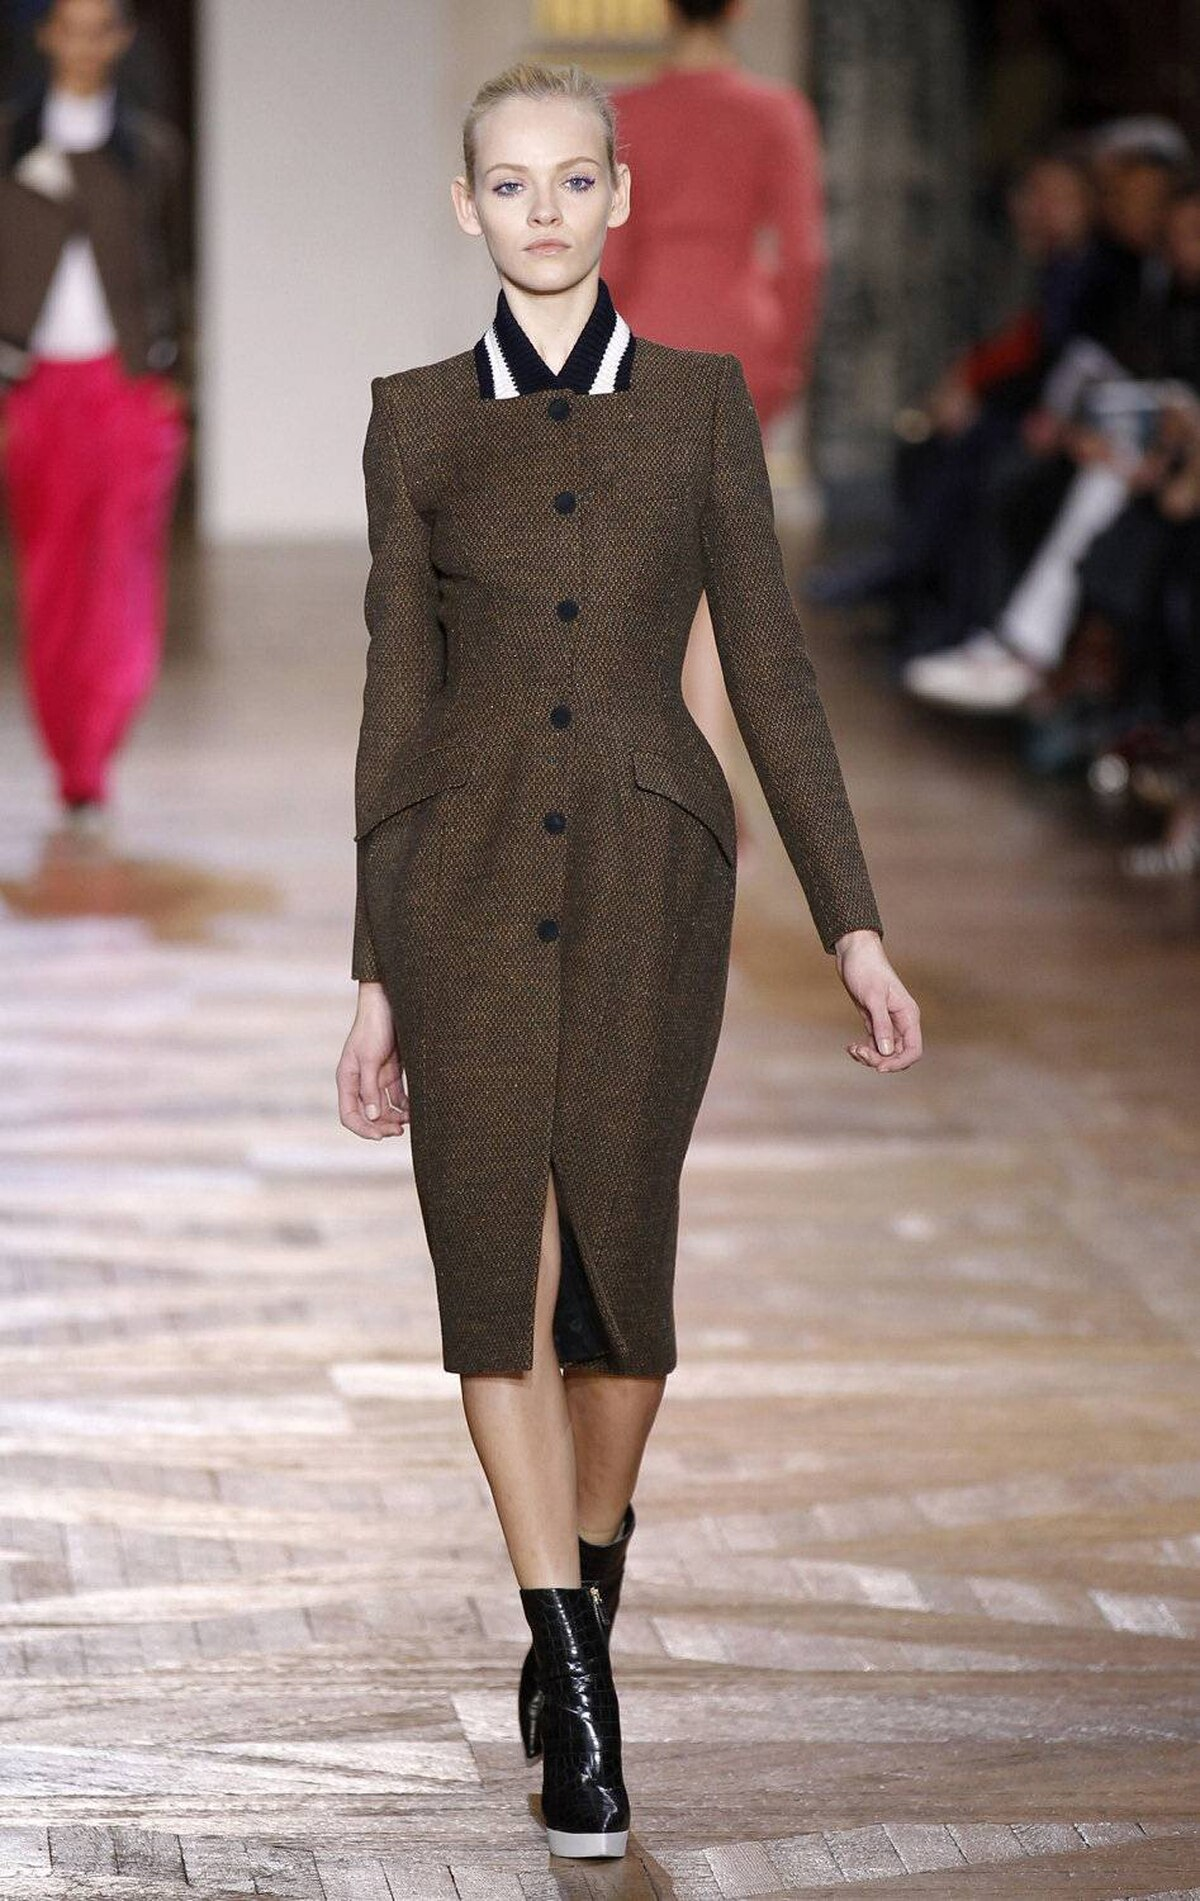 Tweed coat, meet varsity jacket. Here, McCartney hits the uptown-downtown sweet spot. Such a fresh twist aside, the hourglass shape confirms her knack for tailoring.